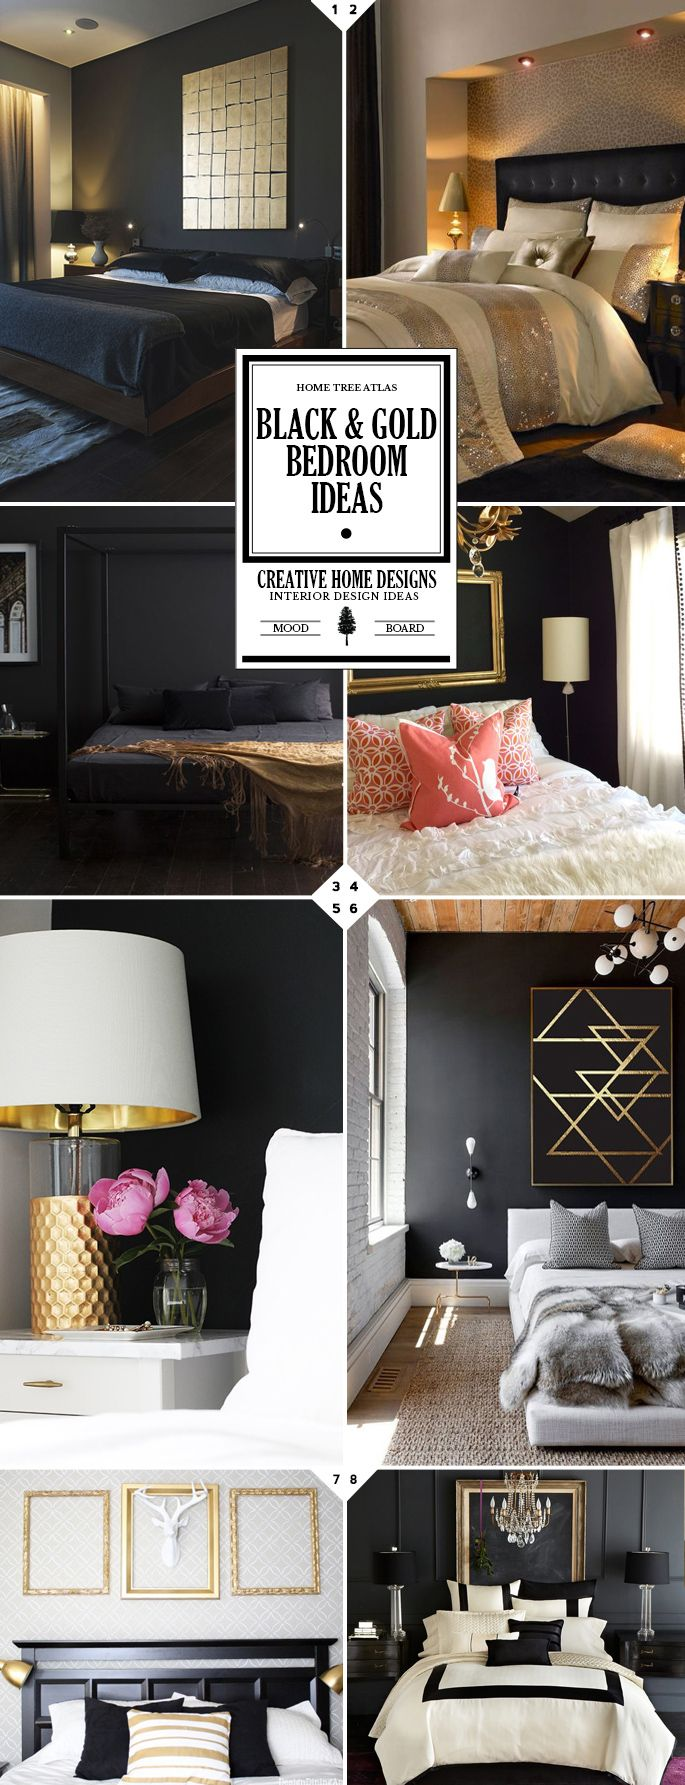 Black and gold bedroom - A Touch Of Luxury Black And Gold Bedroom Ideas